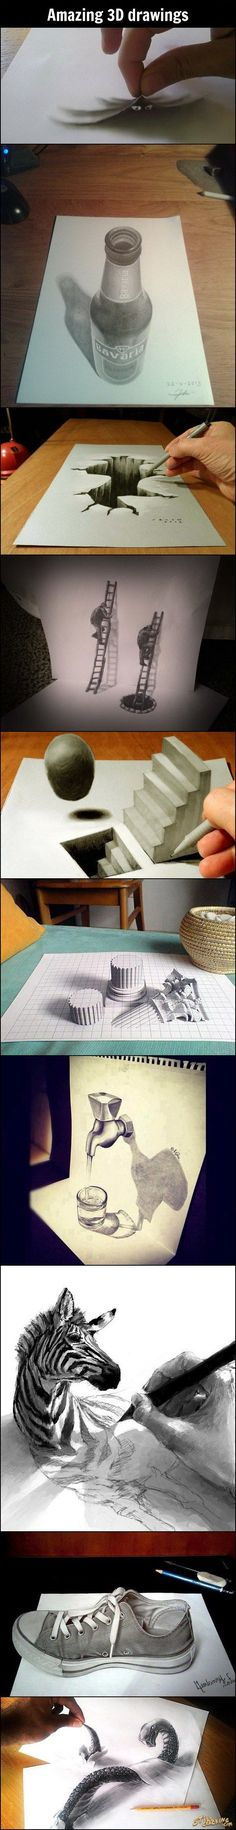 Still Cracking » Its Your Time To Laugh!Amazing 3D Drawings - Still Cracking